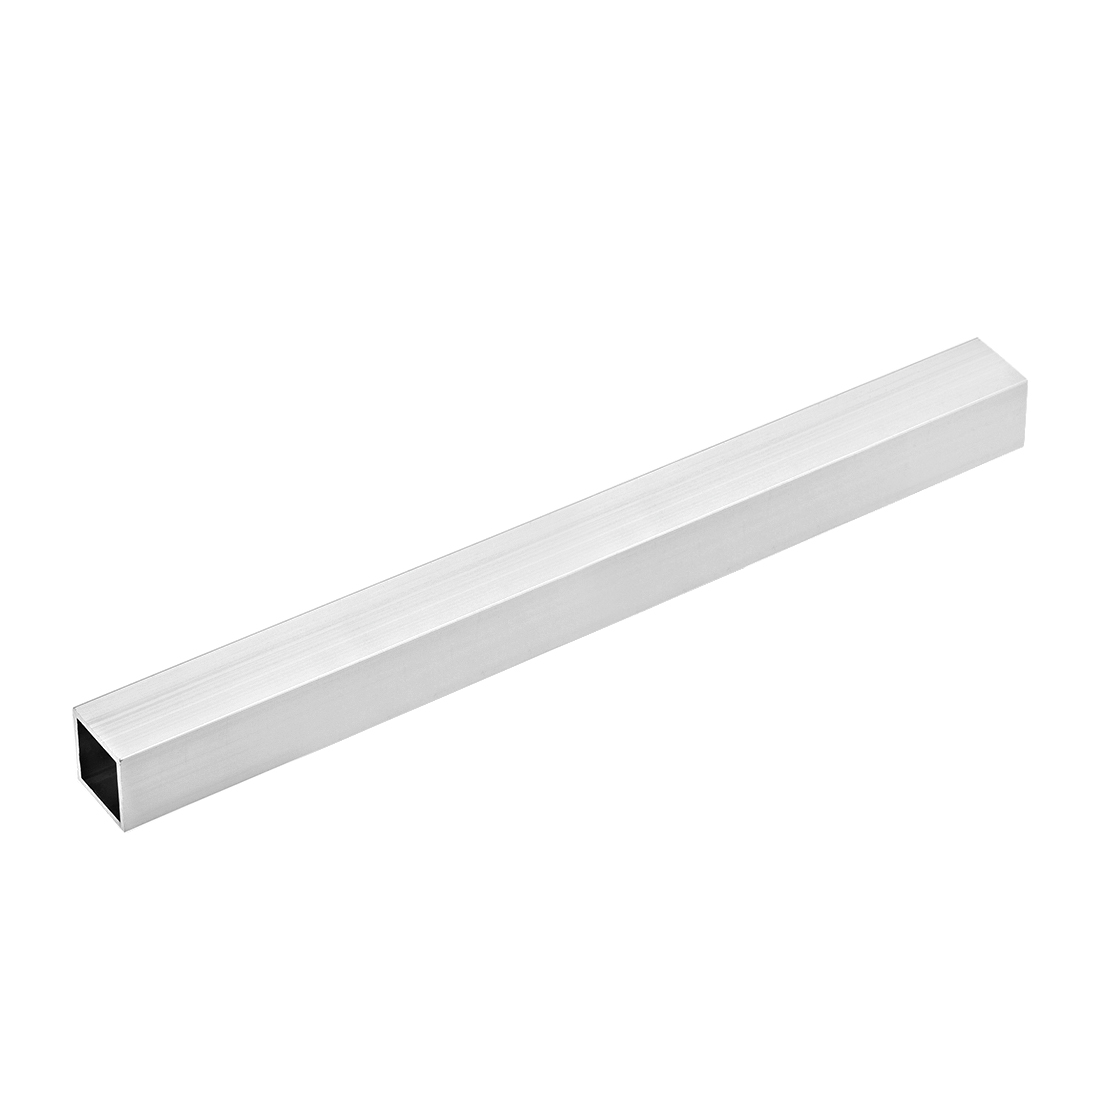 6063 Aluminum Square Tube 25mmx25mmx0.8mm Wall Thickness 300mm Length Tubing